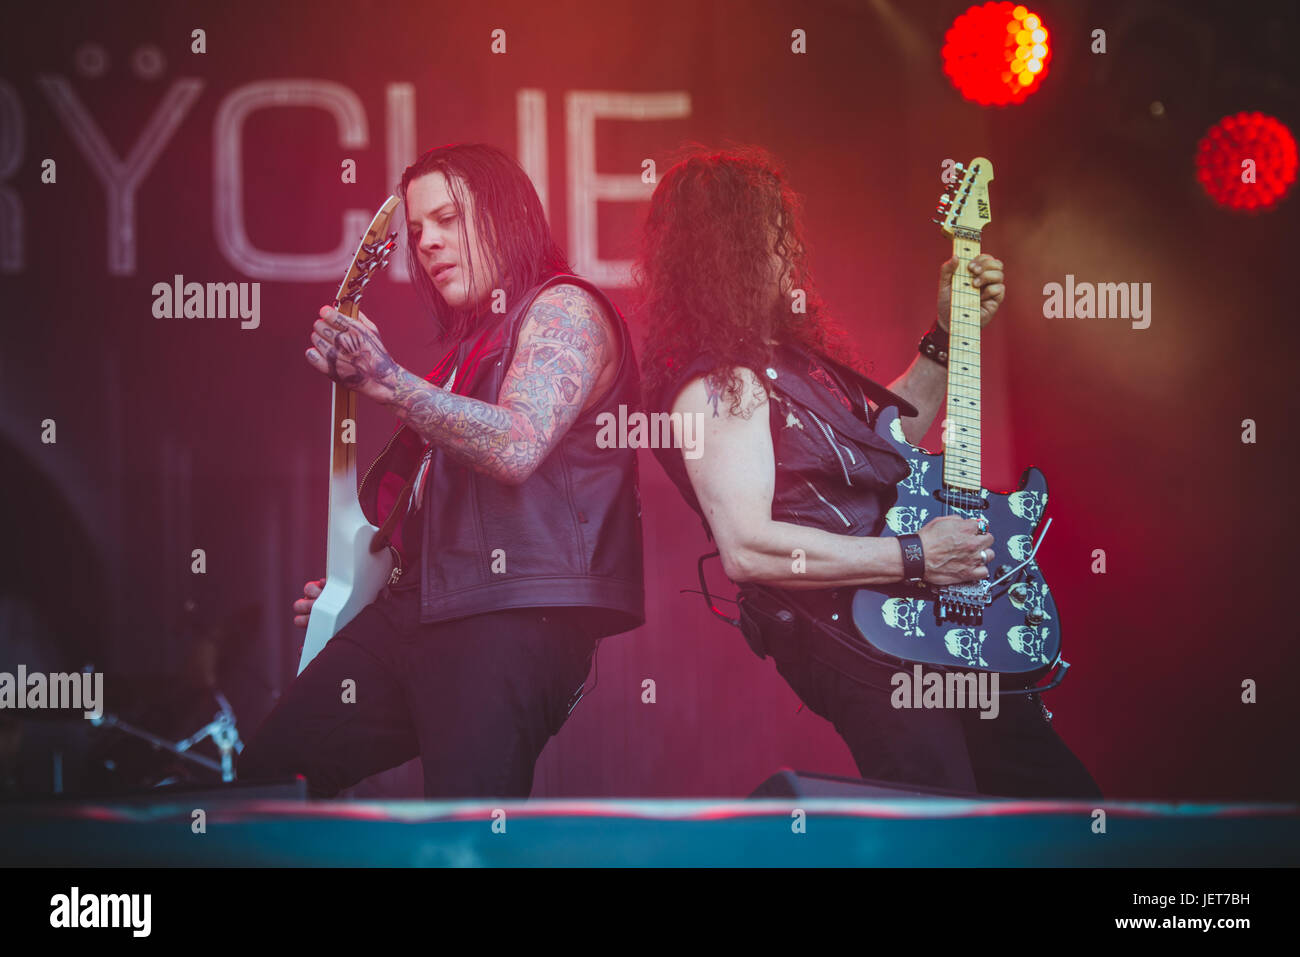 June 16, 2017: Queensryche performing live at the Hellfest Festival 2017 in Clisson, near Nantes Photo: Alessandro - Stock Image